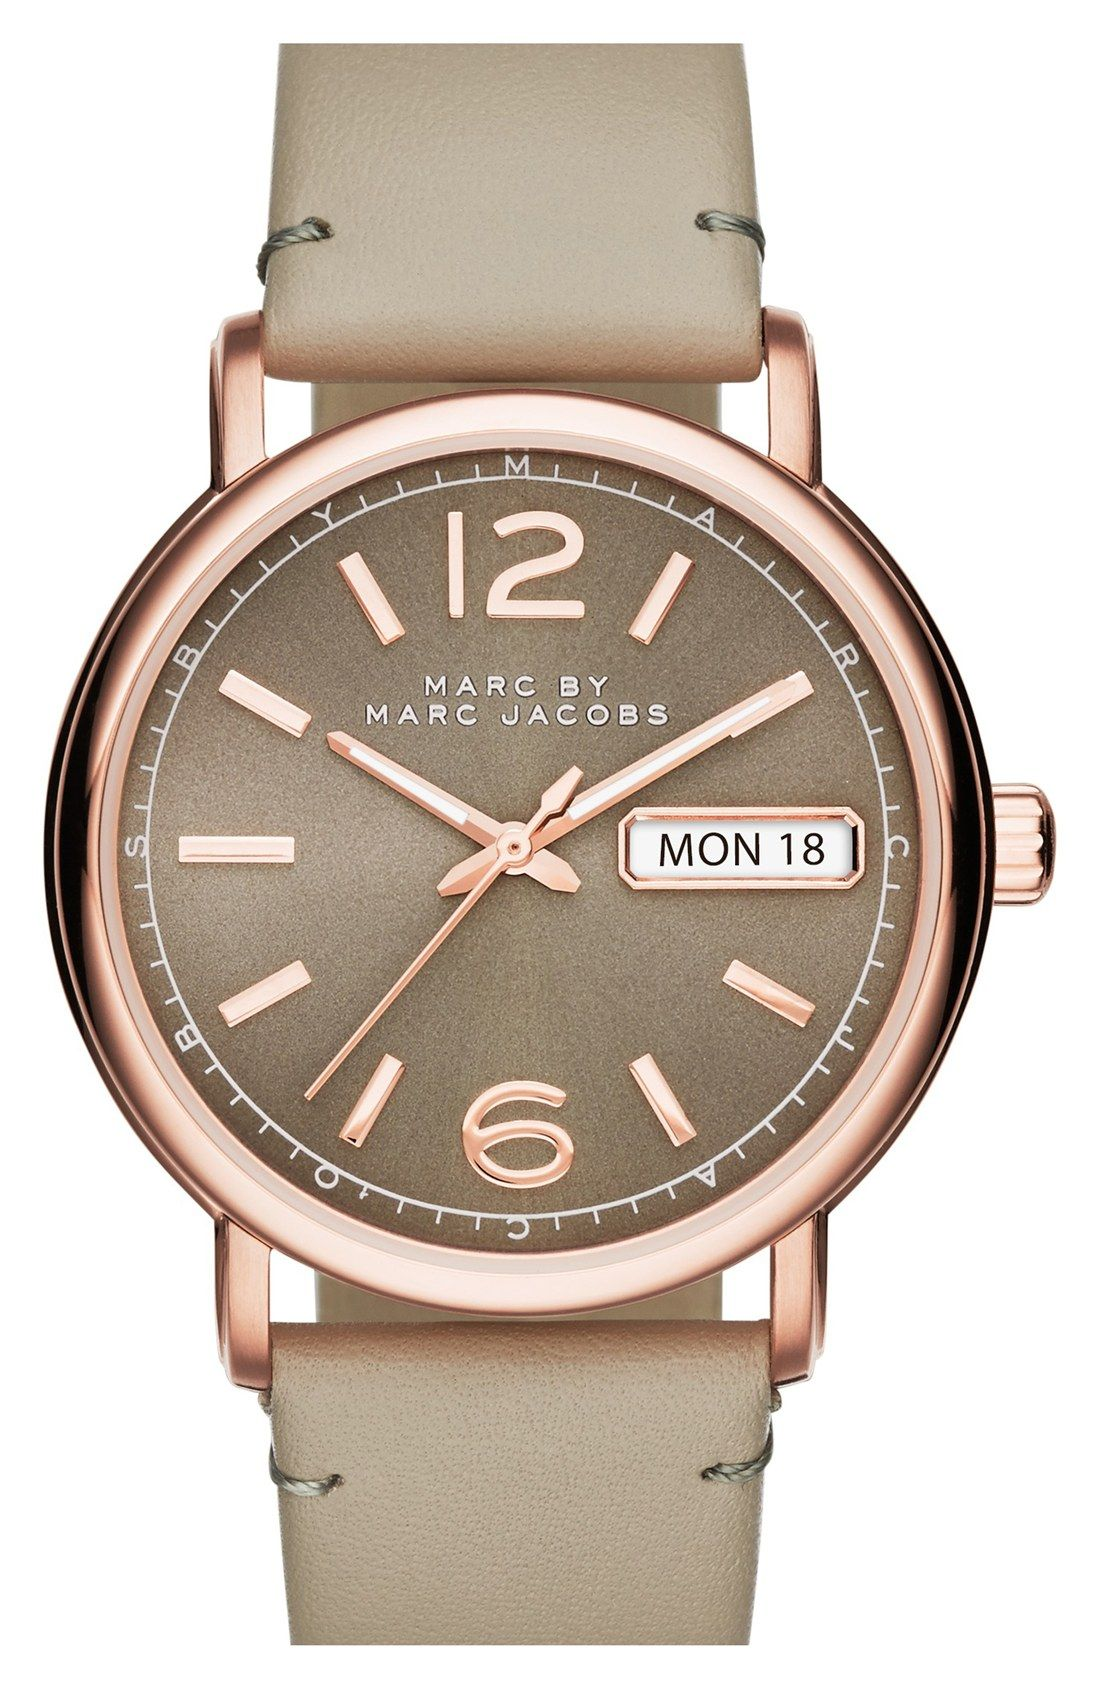 MARC BY MARC JACOBS 'Fergus' Leather Strap Watch, 38mm